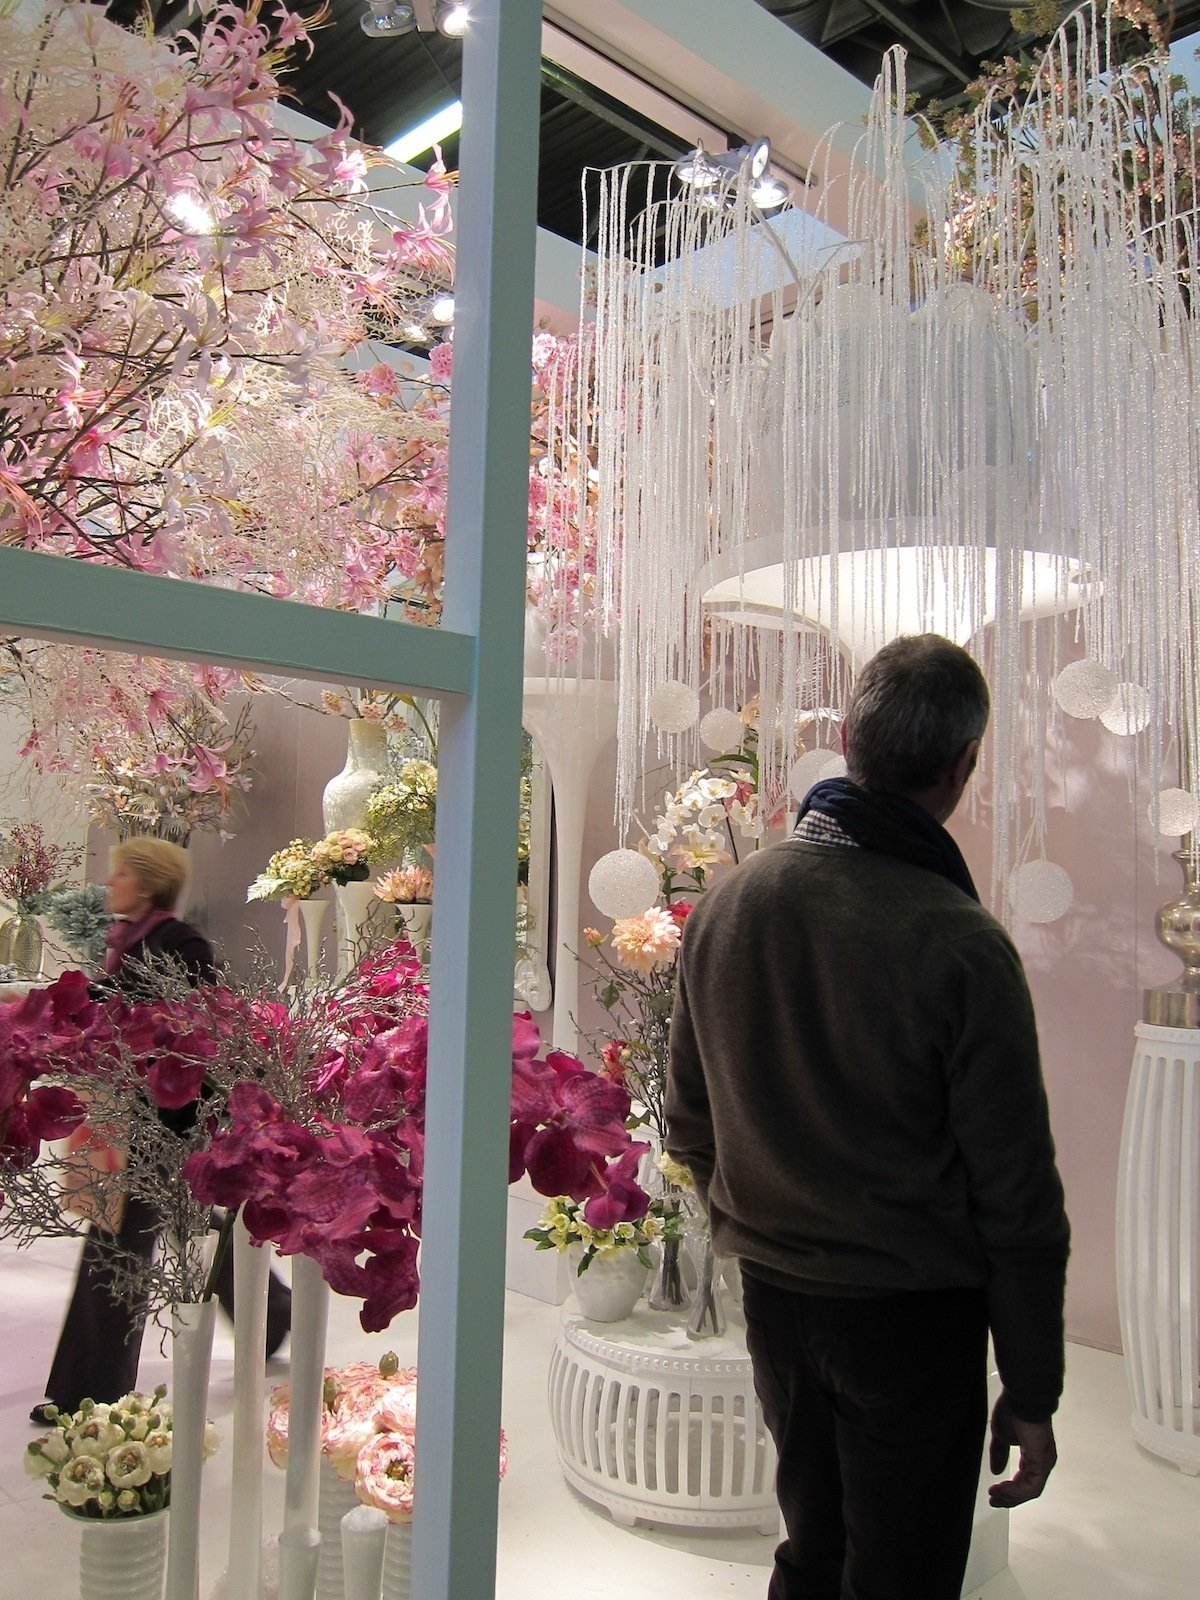 Maison & Objet 2011: Part One by Jaime Gillin